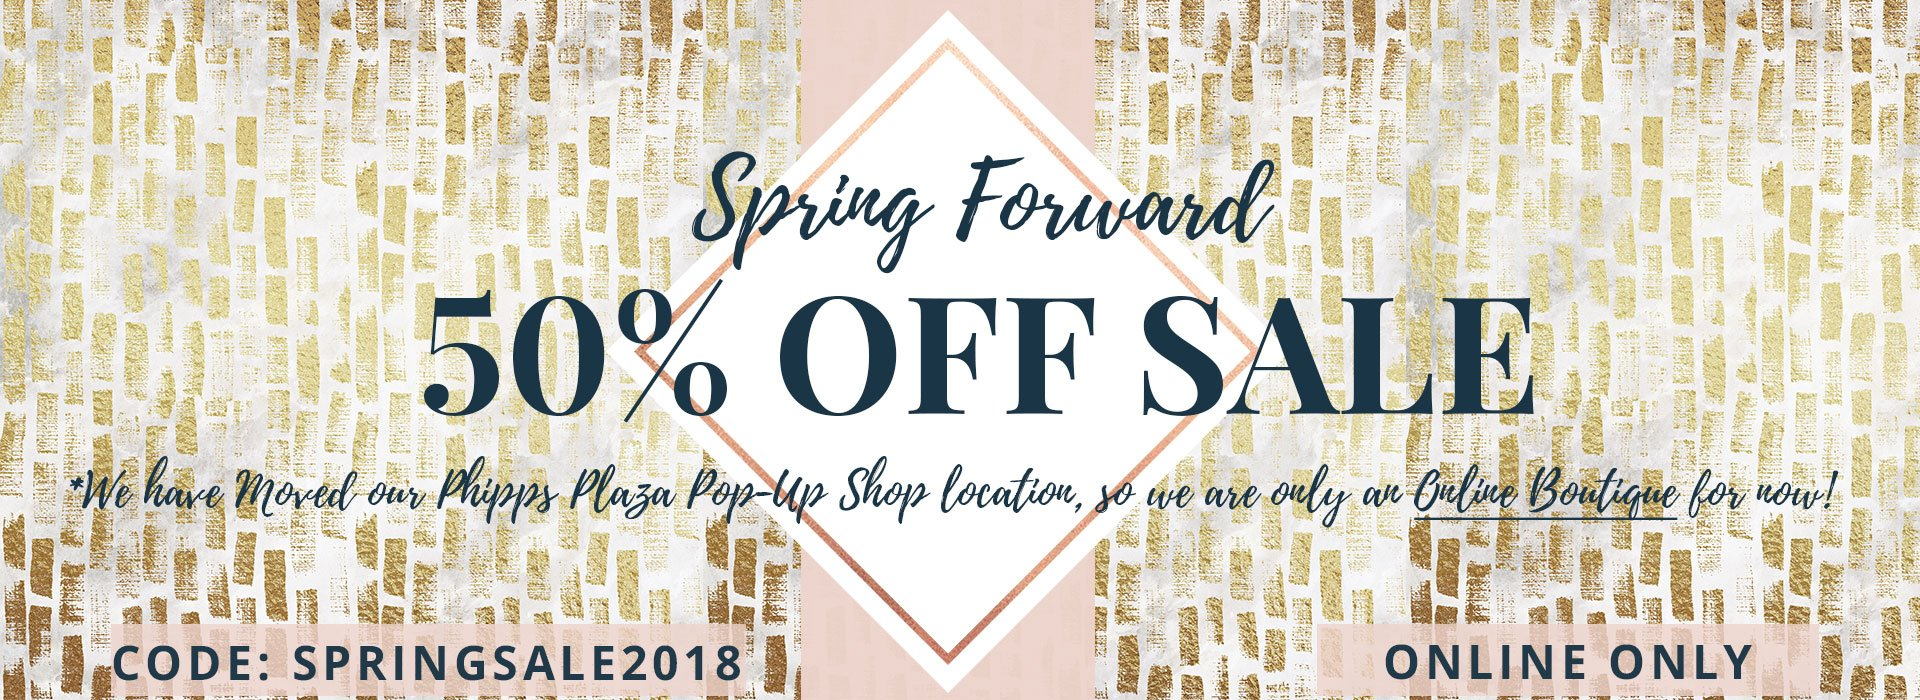 WINTER SALE, WINTER CLOTHING SALE, SWANK SALE, ALEXIS ON SALE, ALEXIS CLOTHING ON SALE, SHOW ME YOUR MUMU SALE, SHOW ME YOUR MUMU DISCOUNT, MICHAEL LAUREN SALE, SWANK DISCOUNT